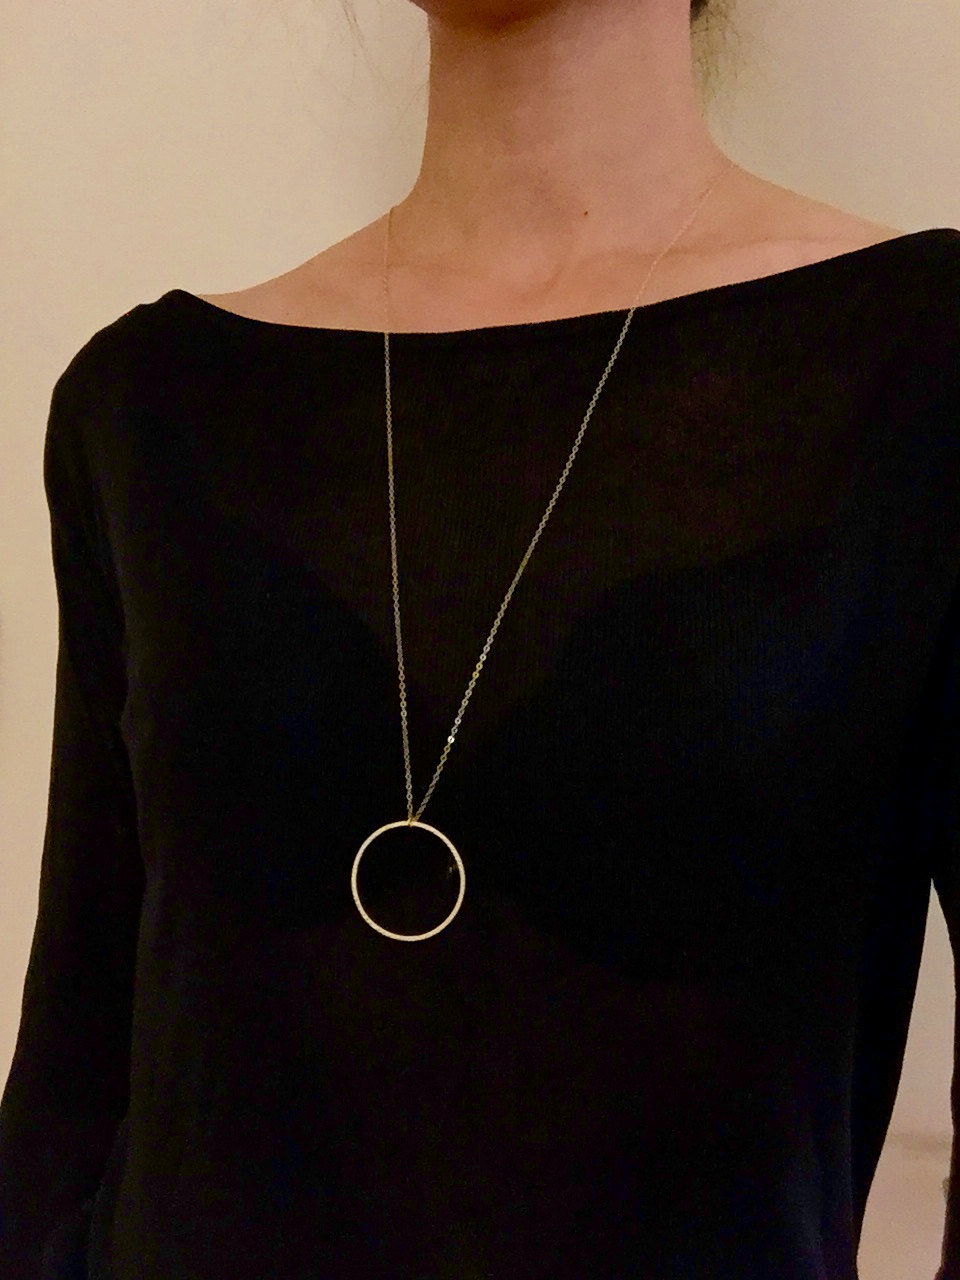 Statement necklace Circle pendant necklace Long necklace jewelry XL153 2